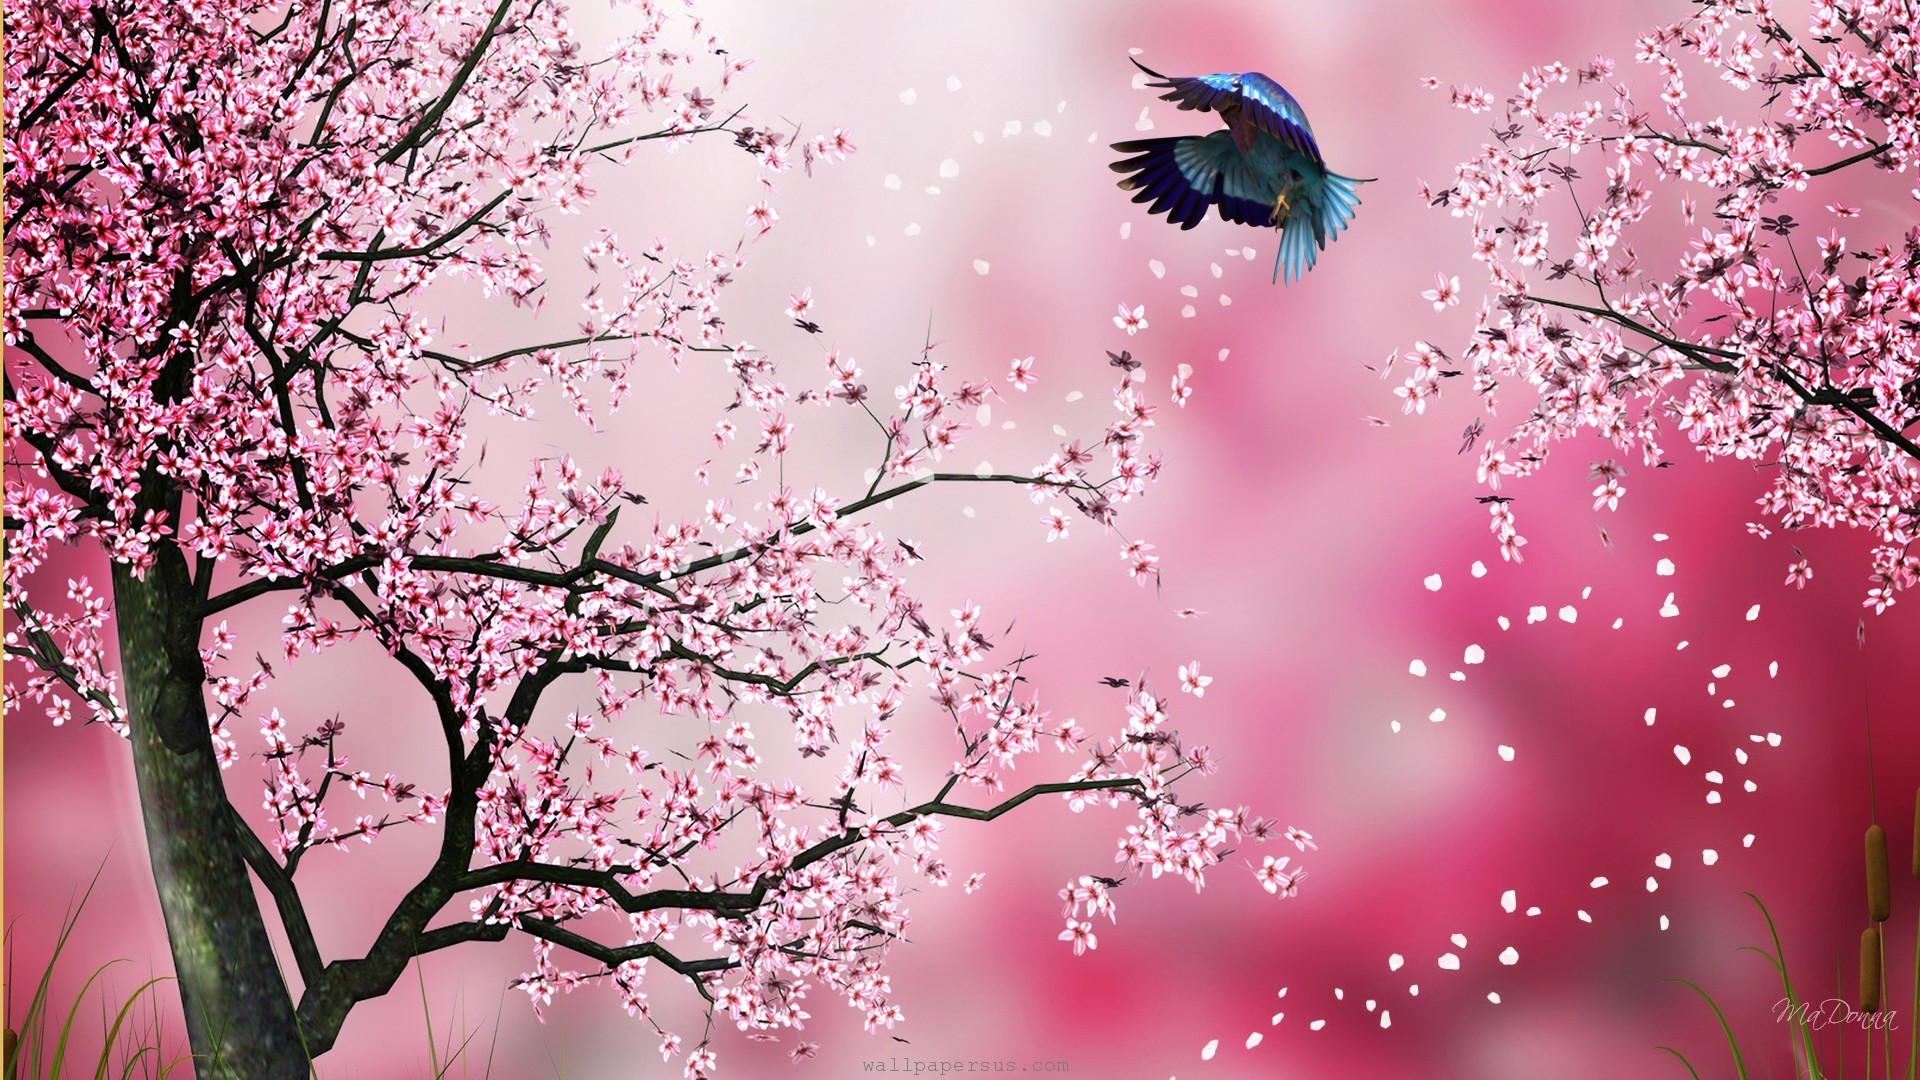 Download x wallpaper cherry blossoms flowers blur tree